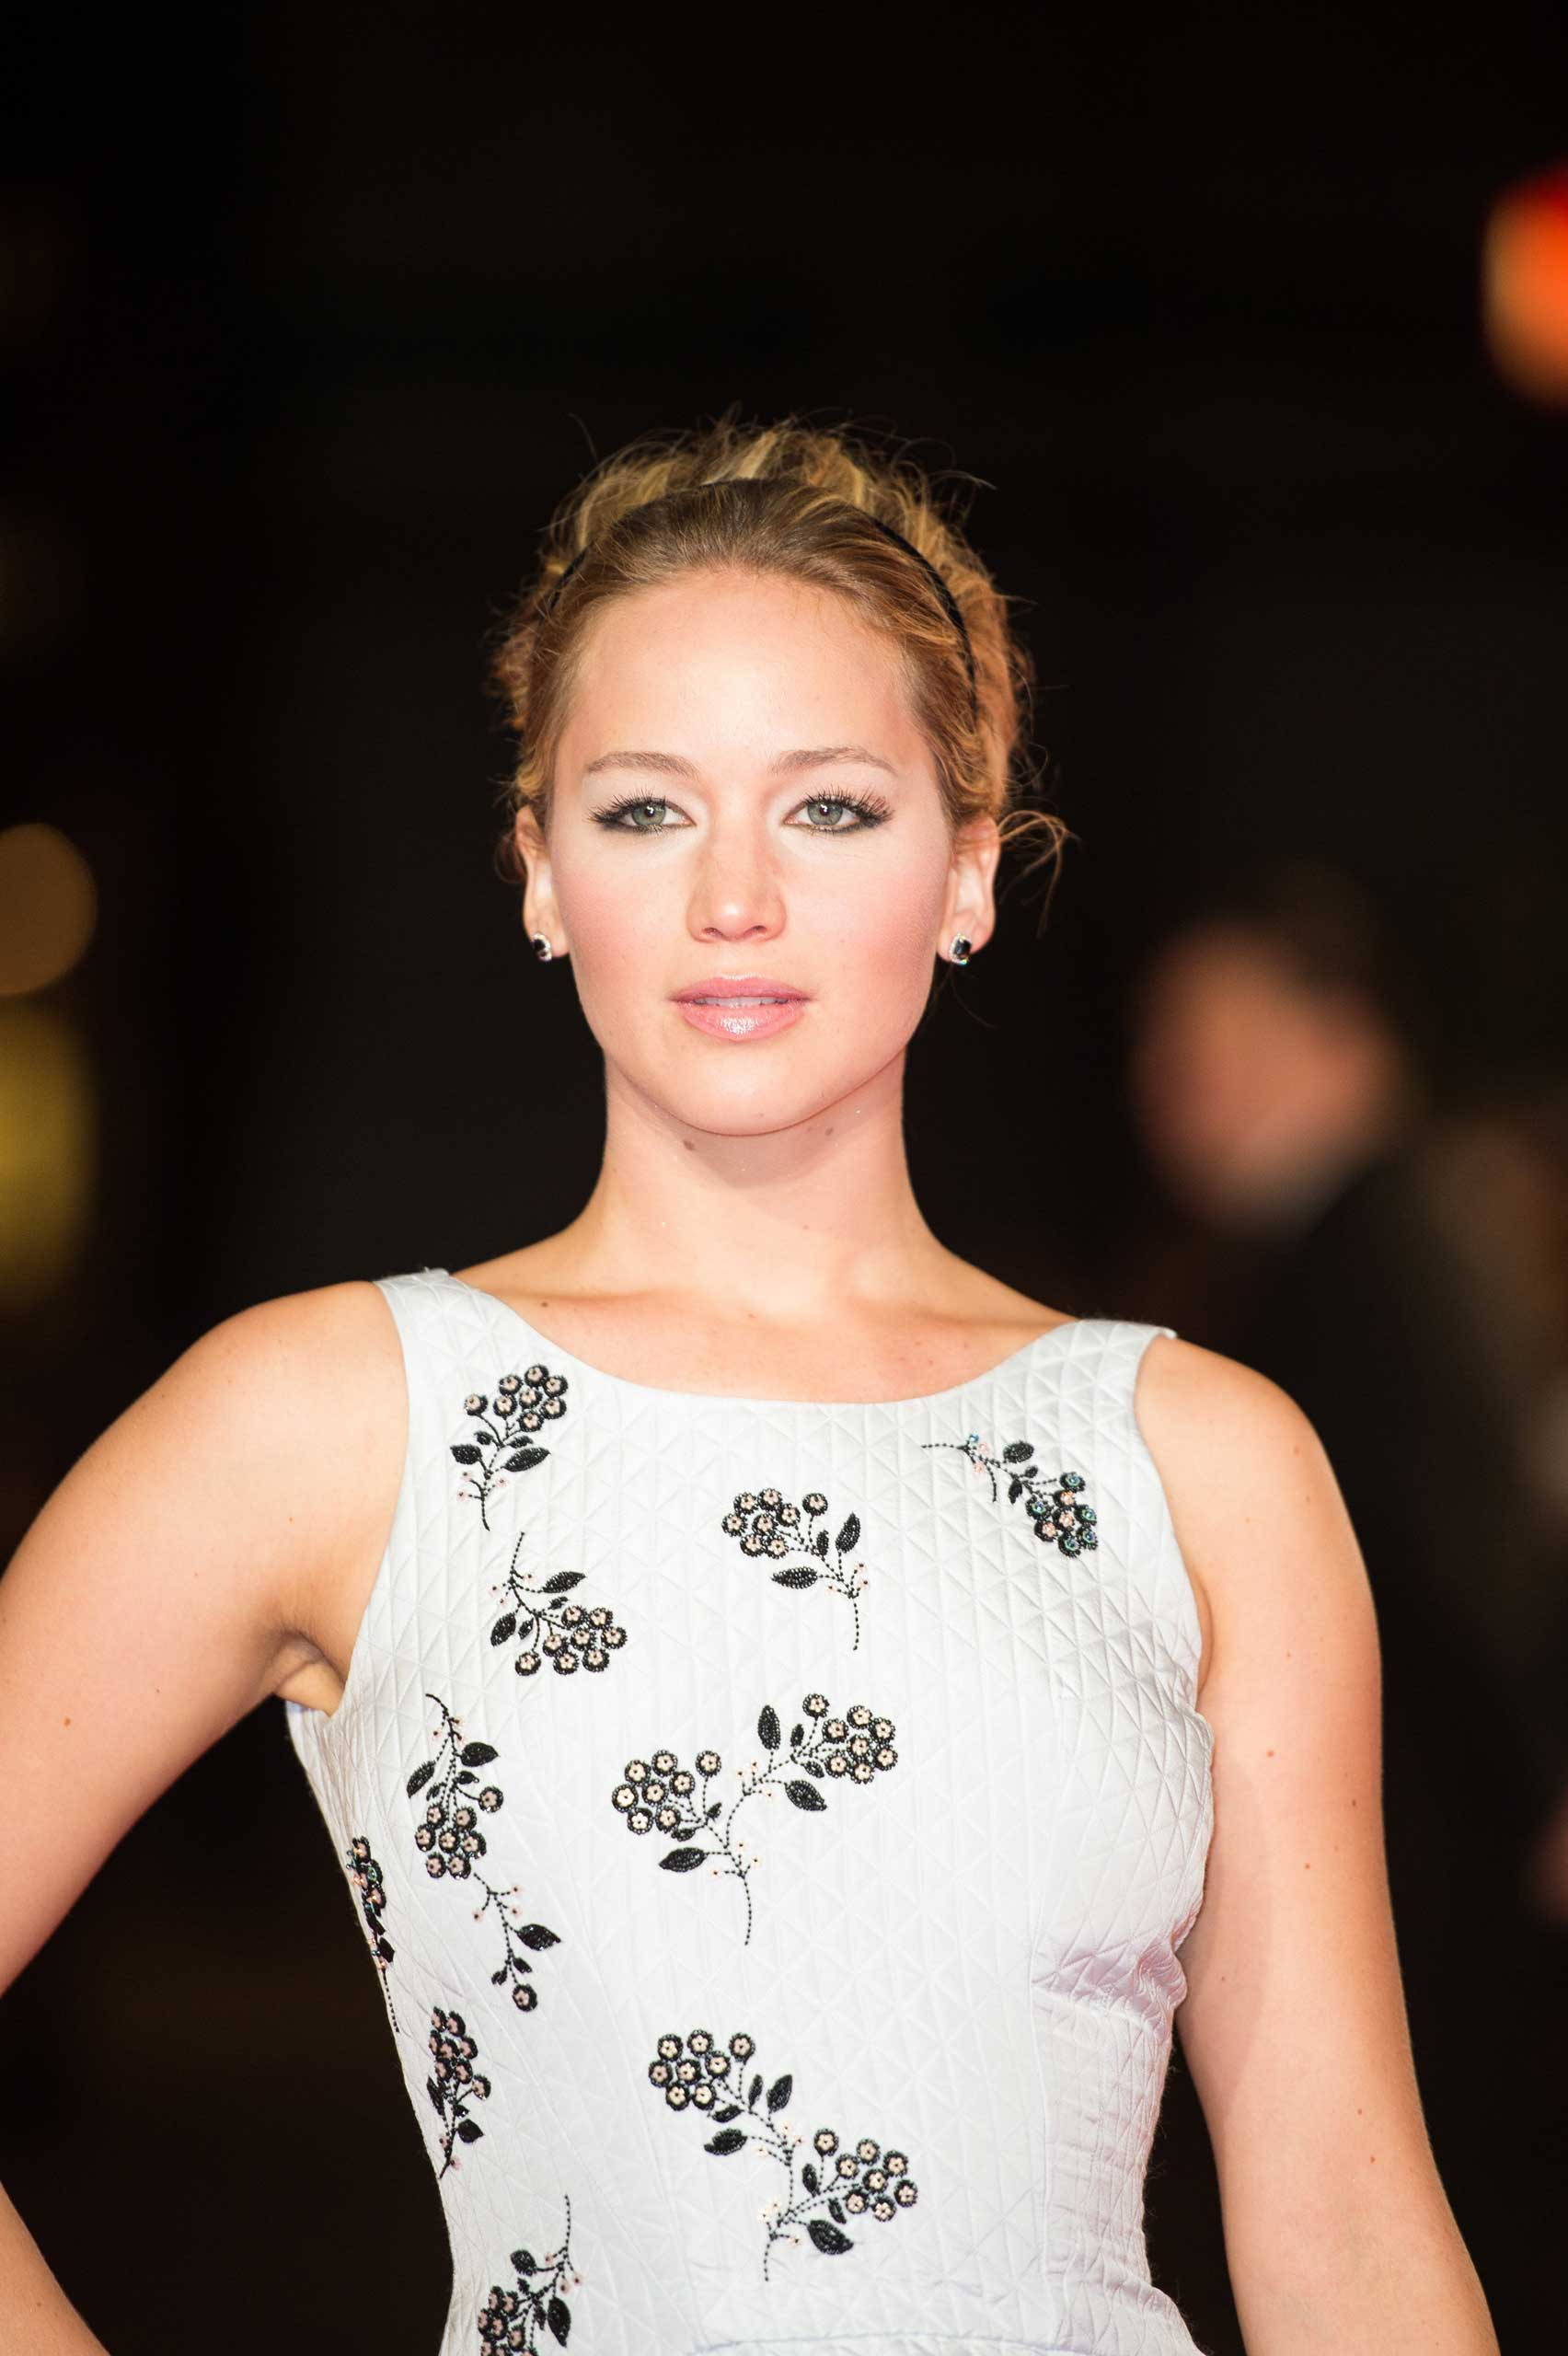 Jennifer Lawrence at the Hunger Games Premiere at Leicester Square in London on Nov. 10, 2014.